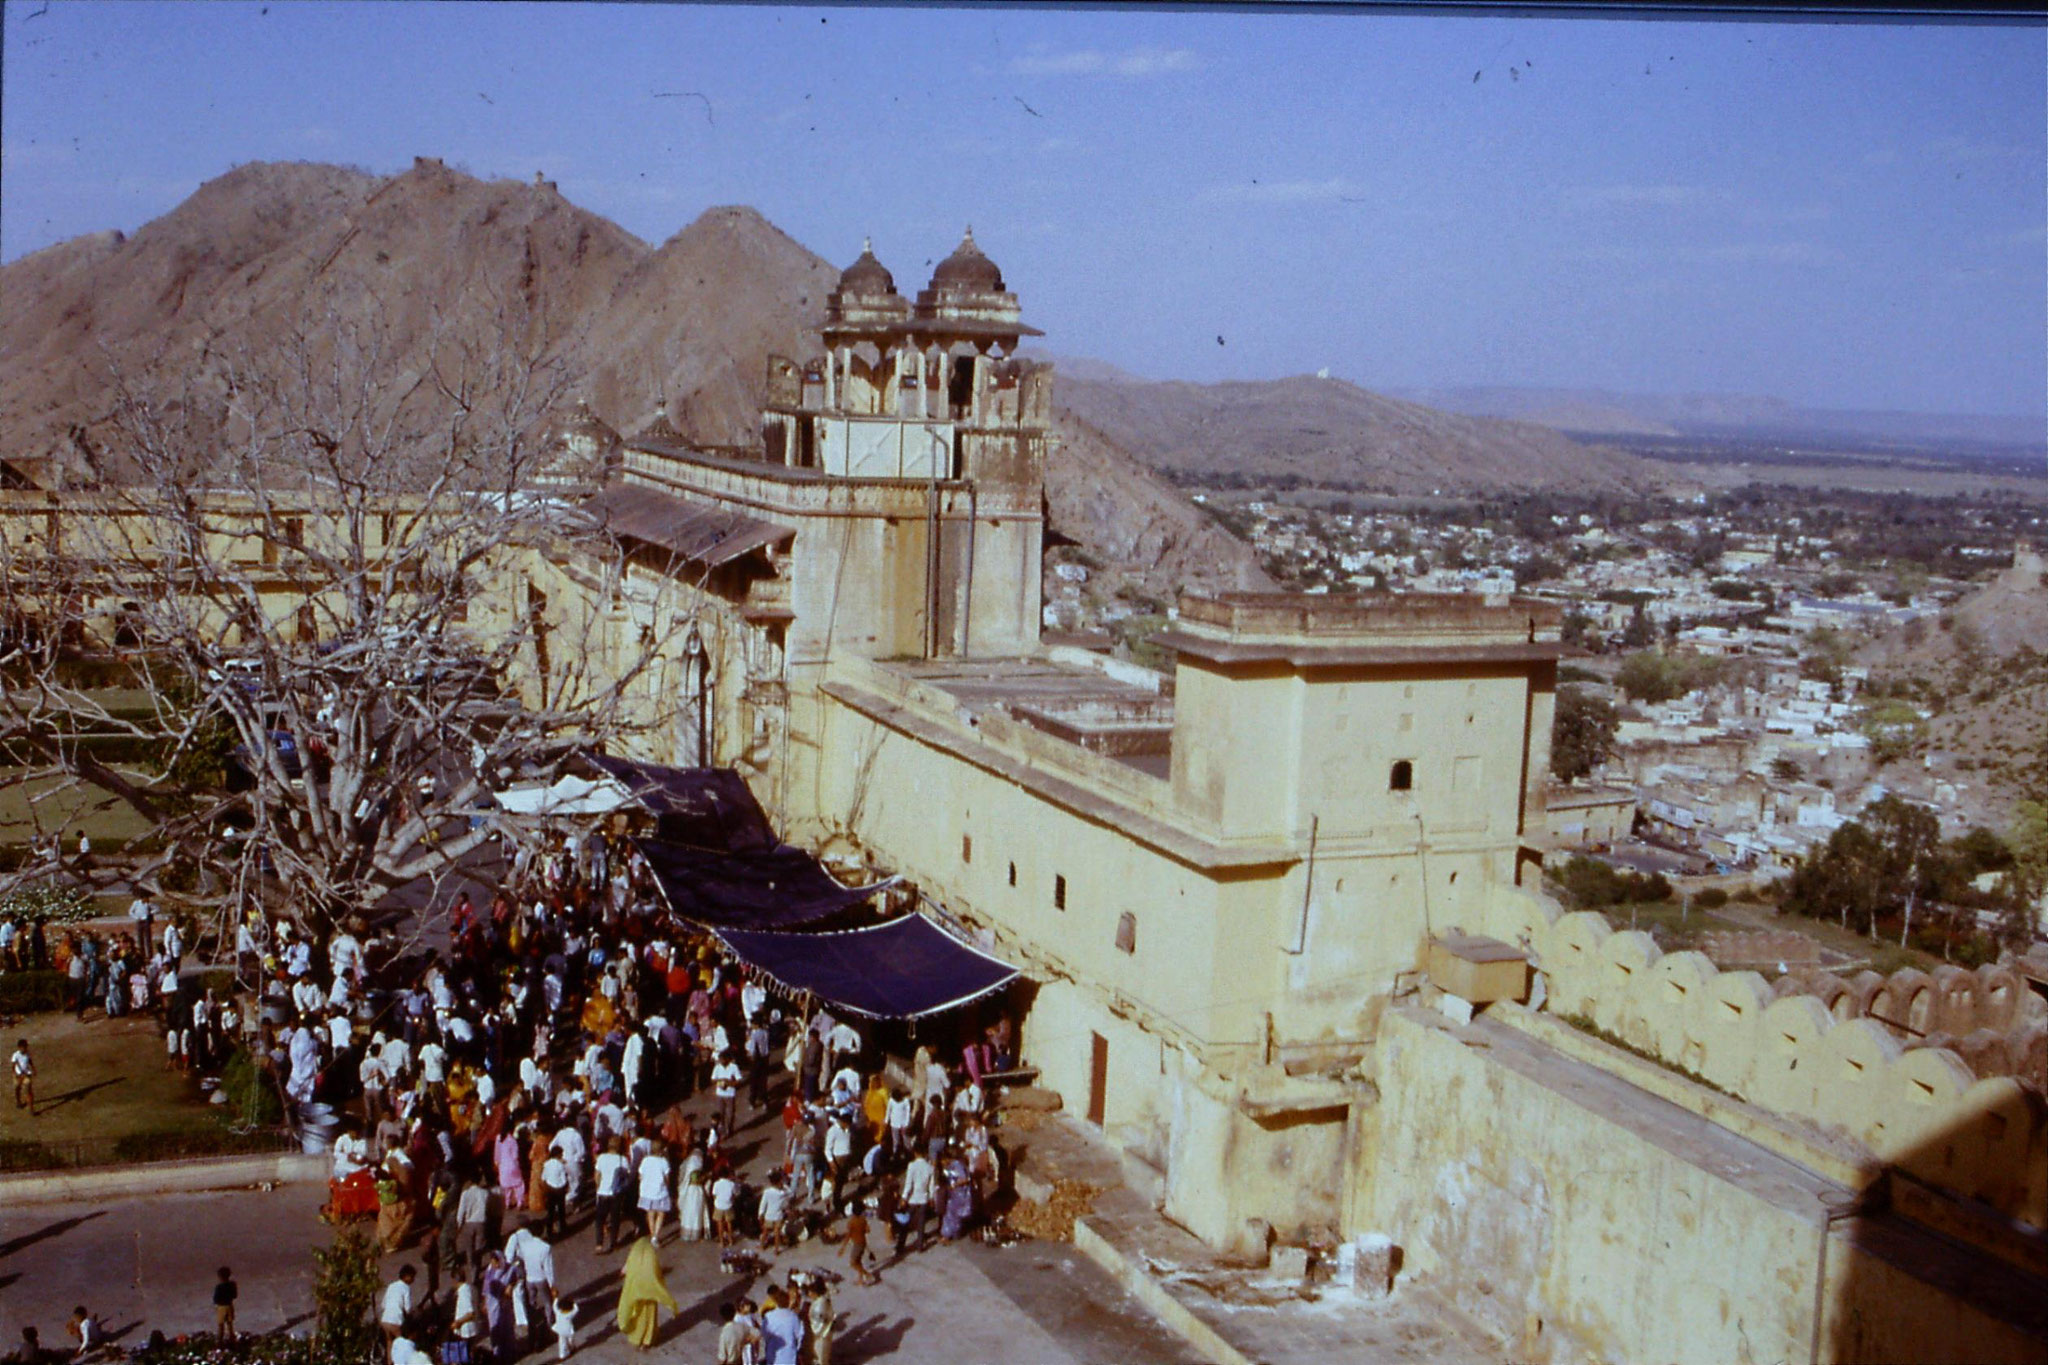 109/18: 3/4/1990 Jaipur/Amber - view from top of amber palace